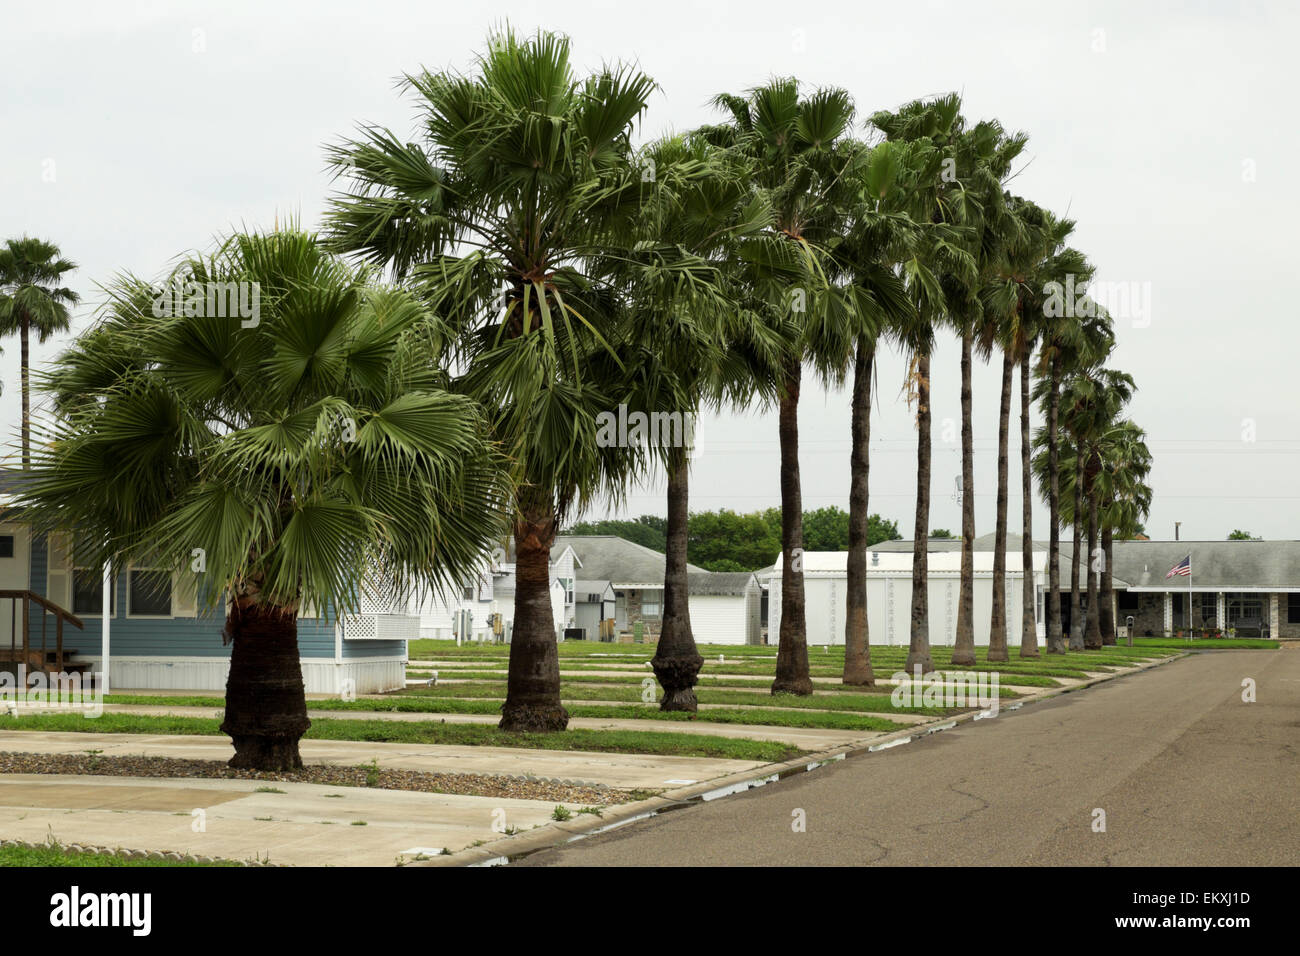 Streetside row of Palm Trees at an RV/Mobile Home Park in south Texas, USA - Stock Image